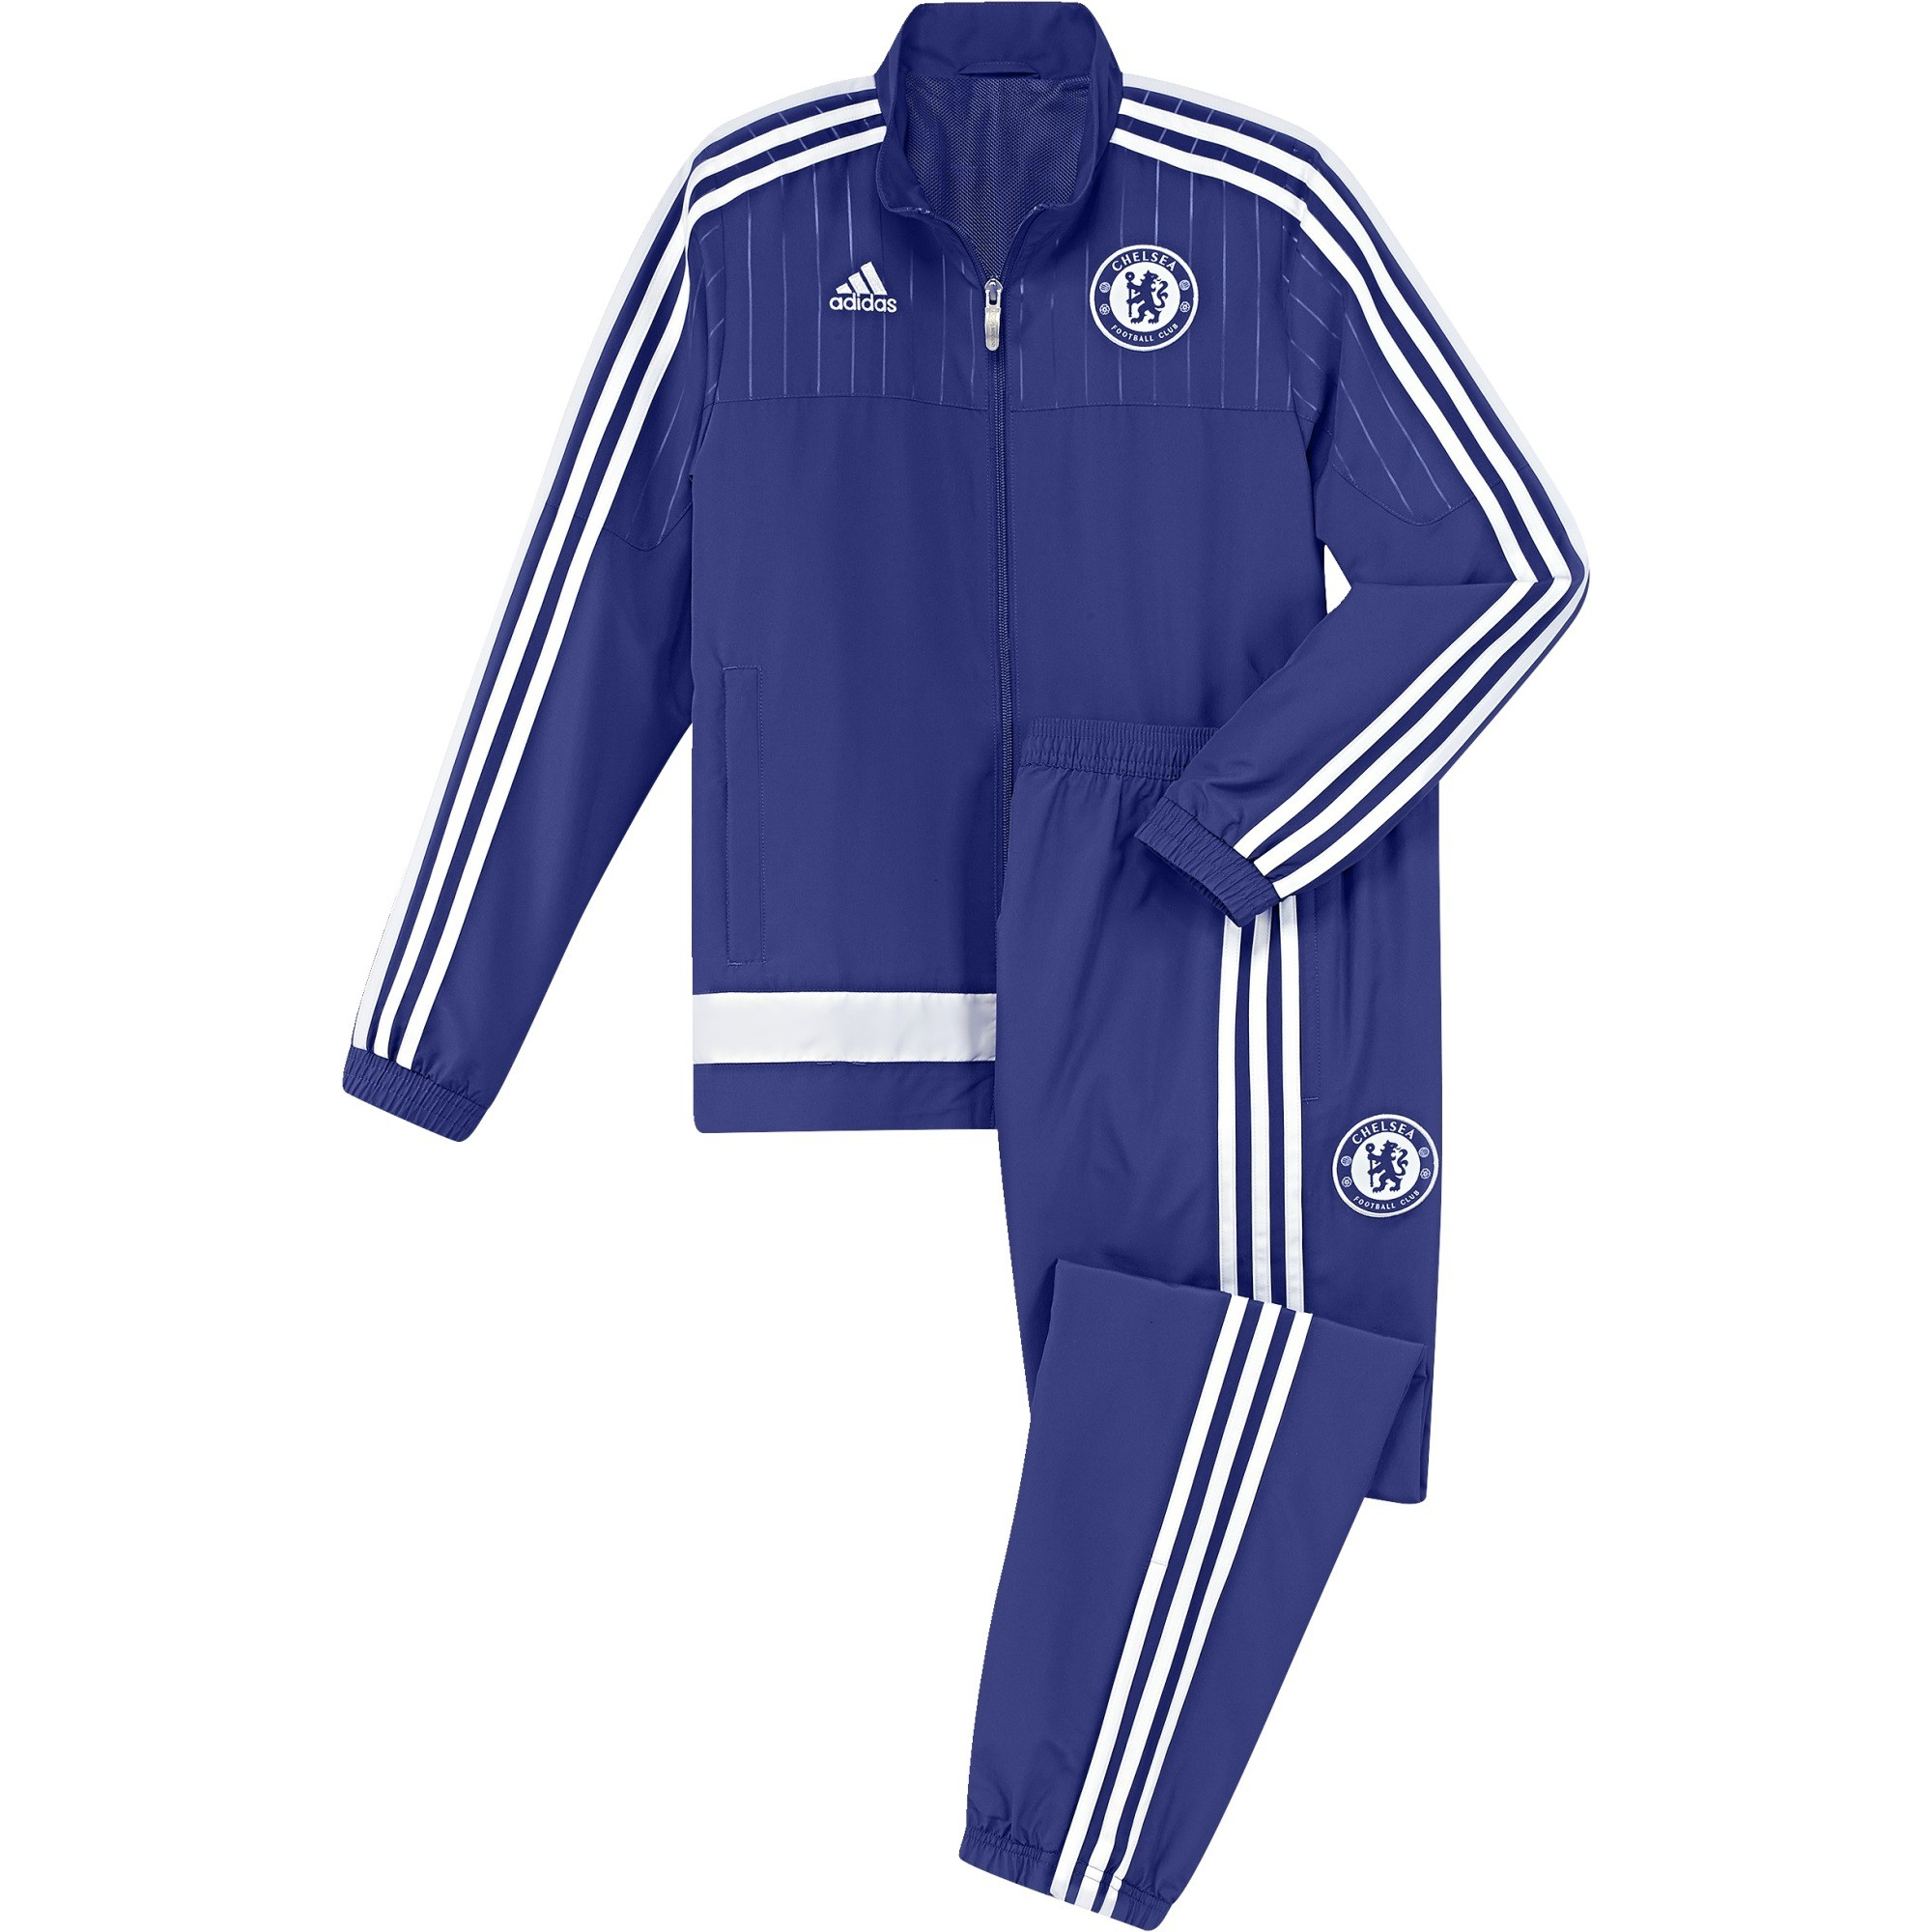 outlet online new release cheap sale ADIDAS CHELSEA SURVETEMENT BLEU JUNIOR 2015/2016